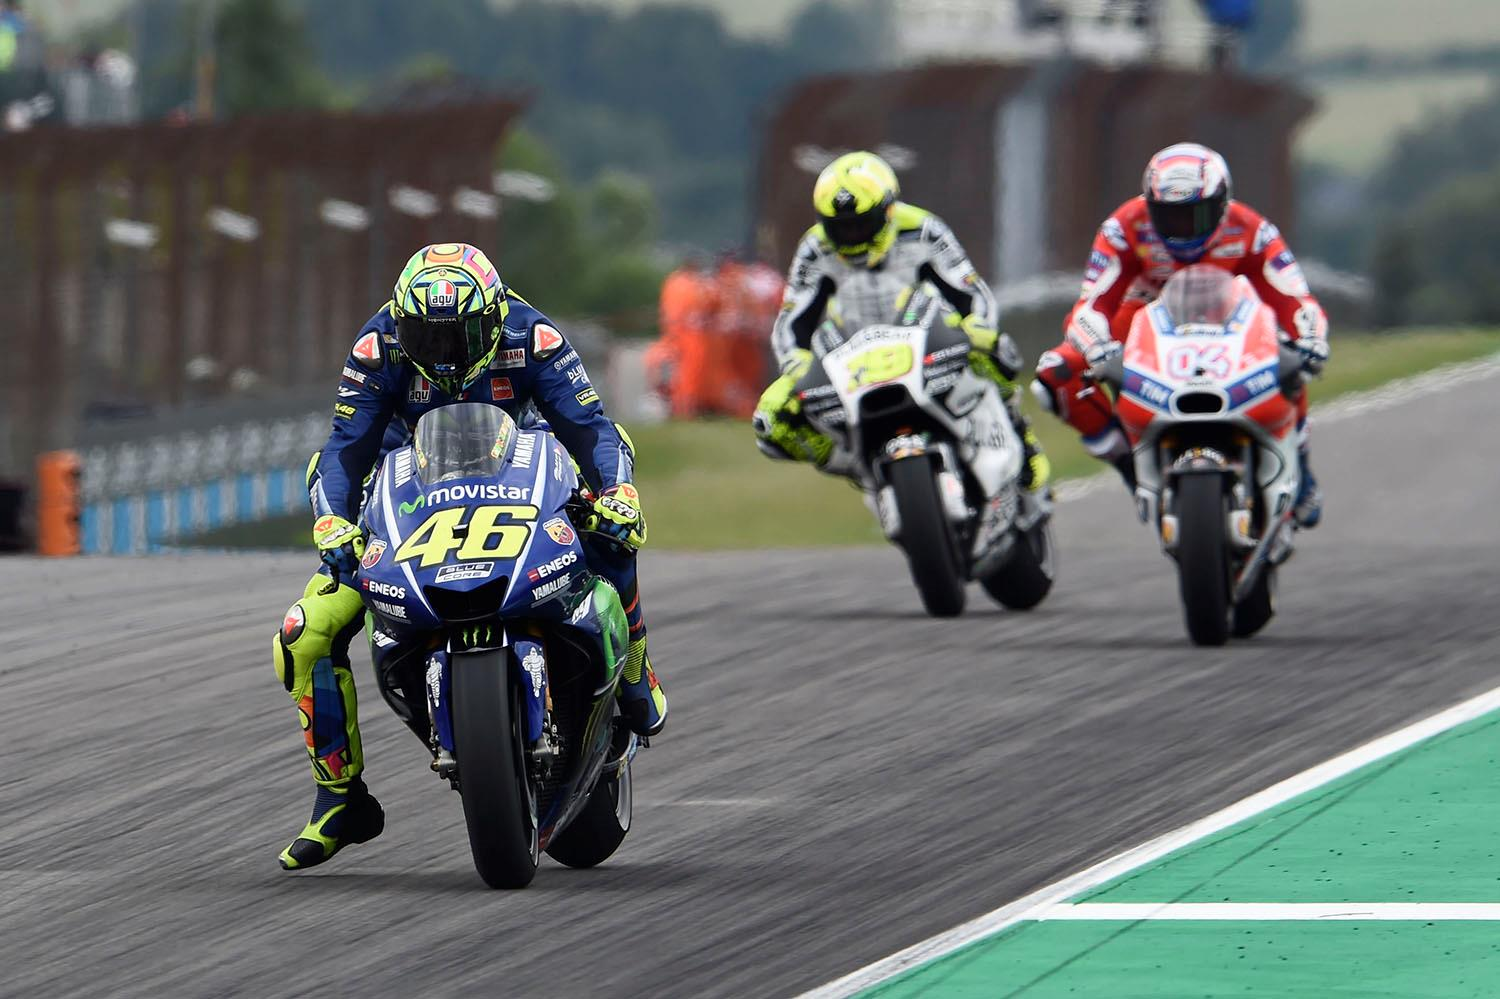 Thousands descend on Brno for Czech GP motorcycle race